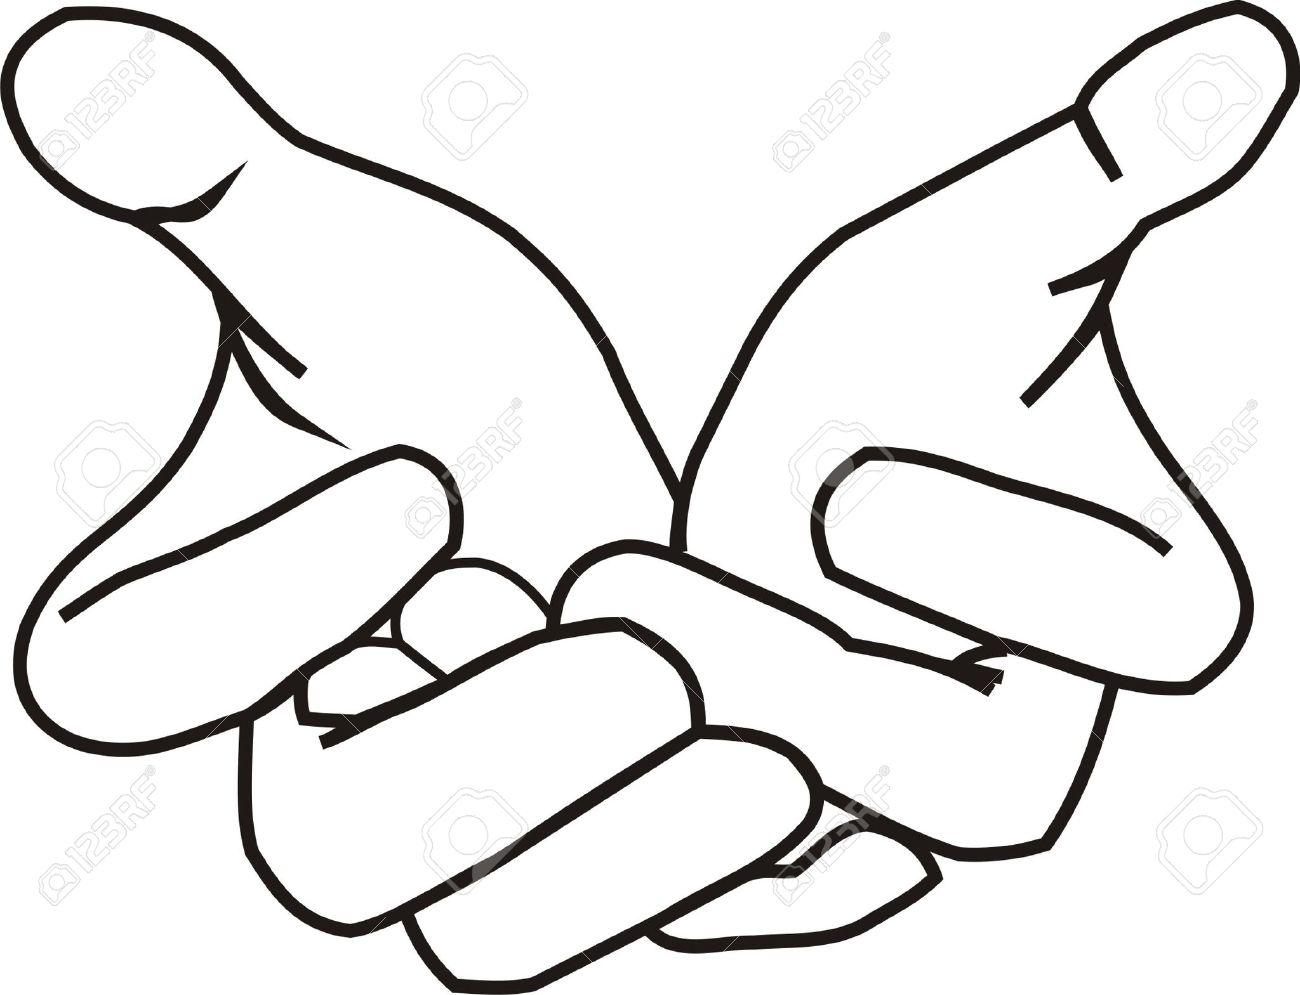 Hands Clipart Black And White